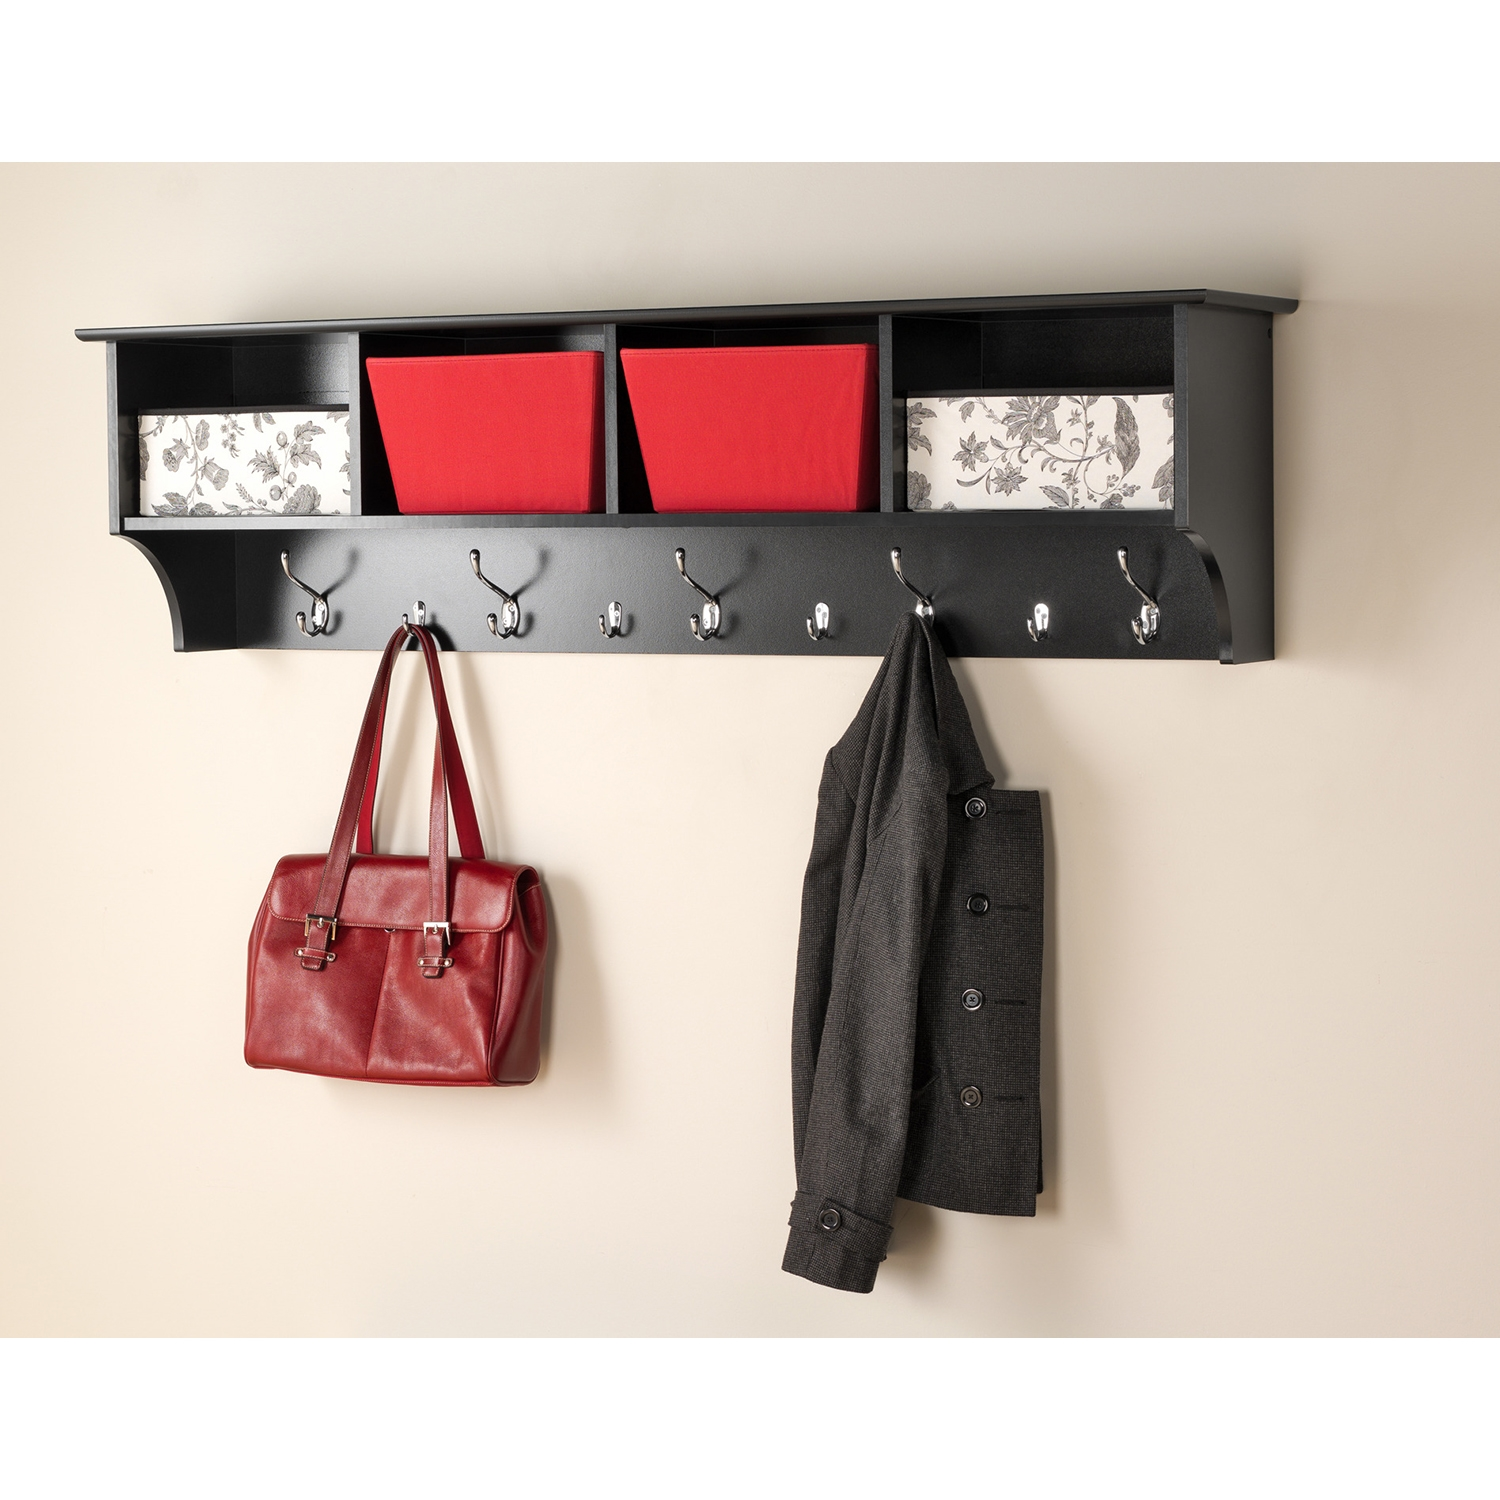 60 Inch Wide Hanging Entryway Shelf - Black - PRE-BEC-6016